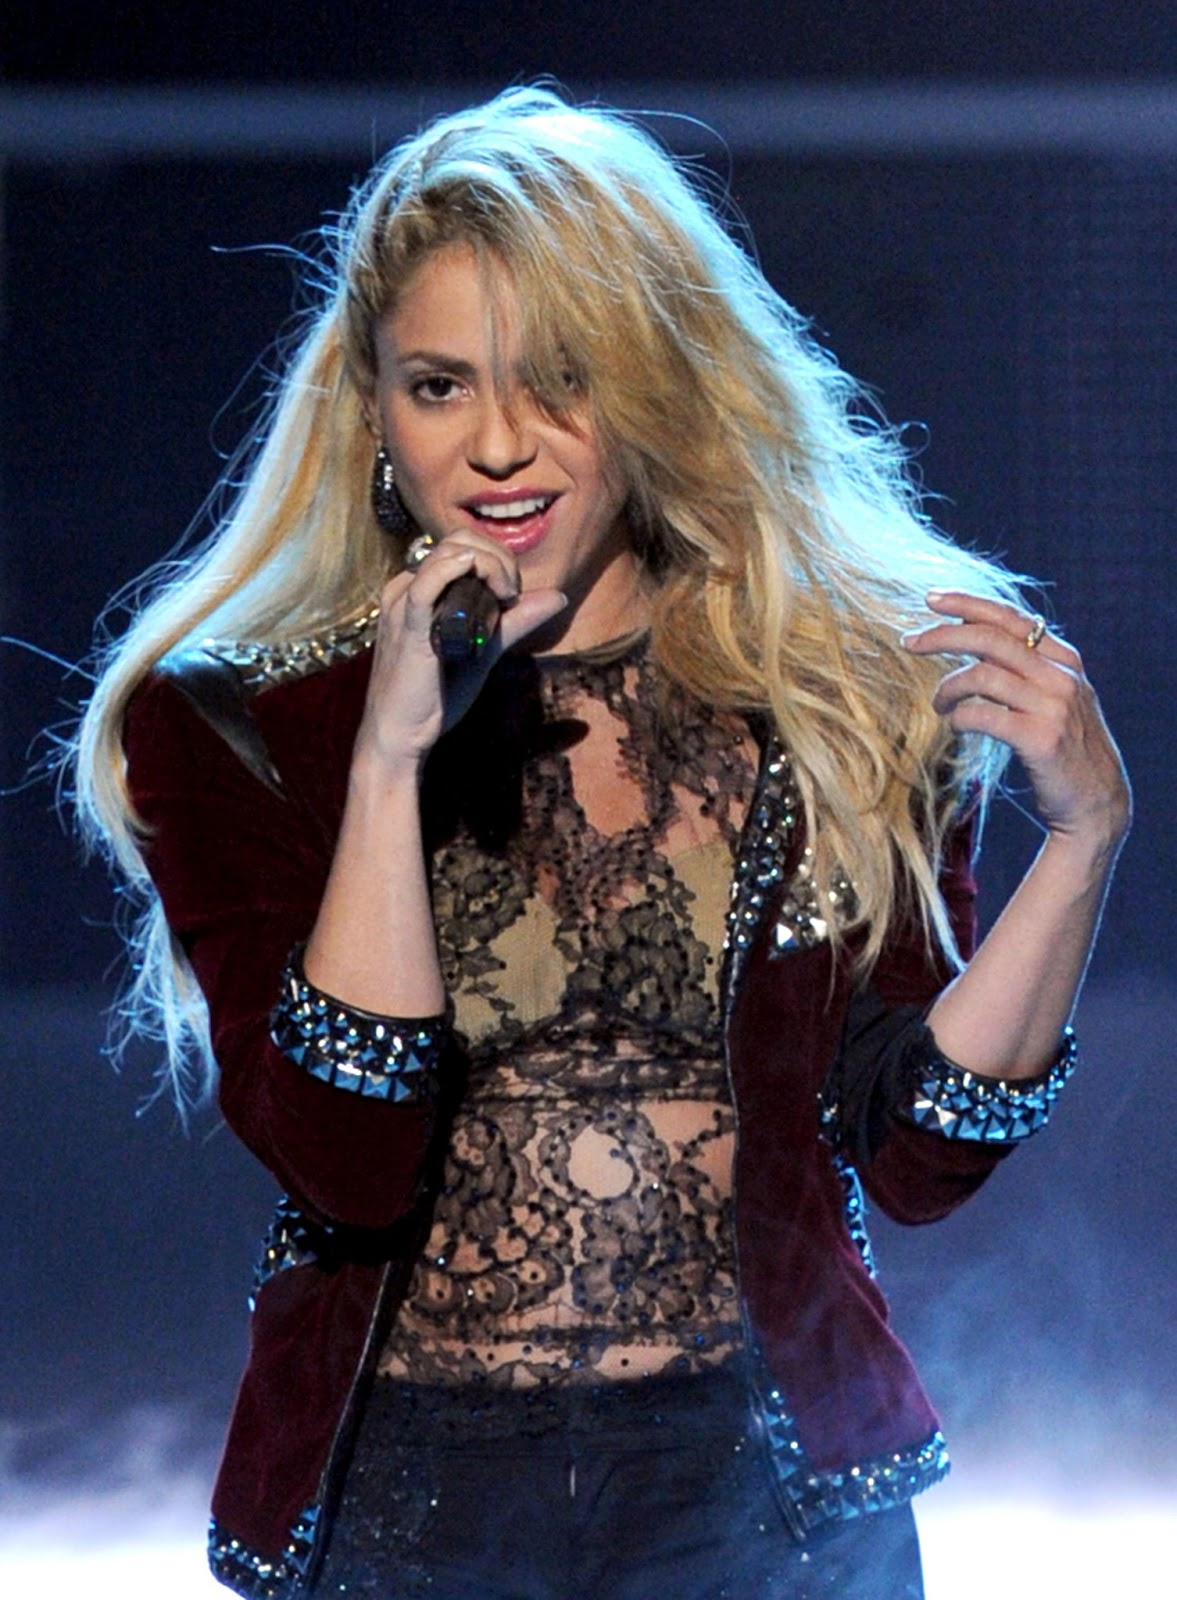 Shakira Brand New Top 10 Hairstyles Design 2013 Images